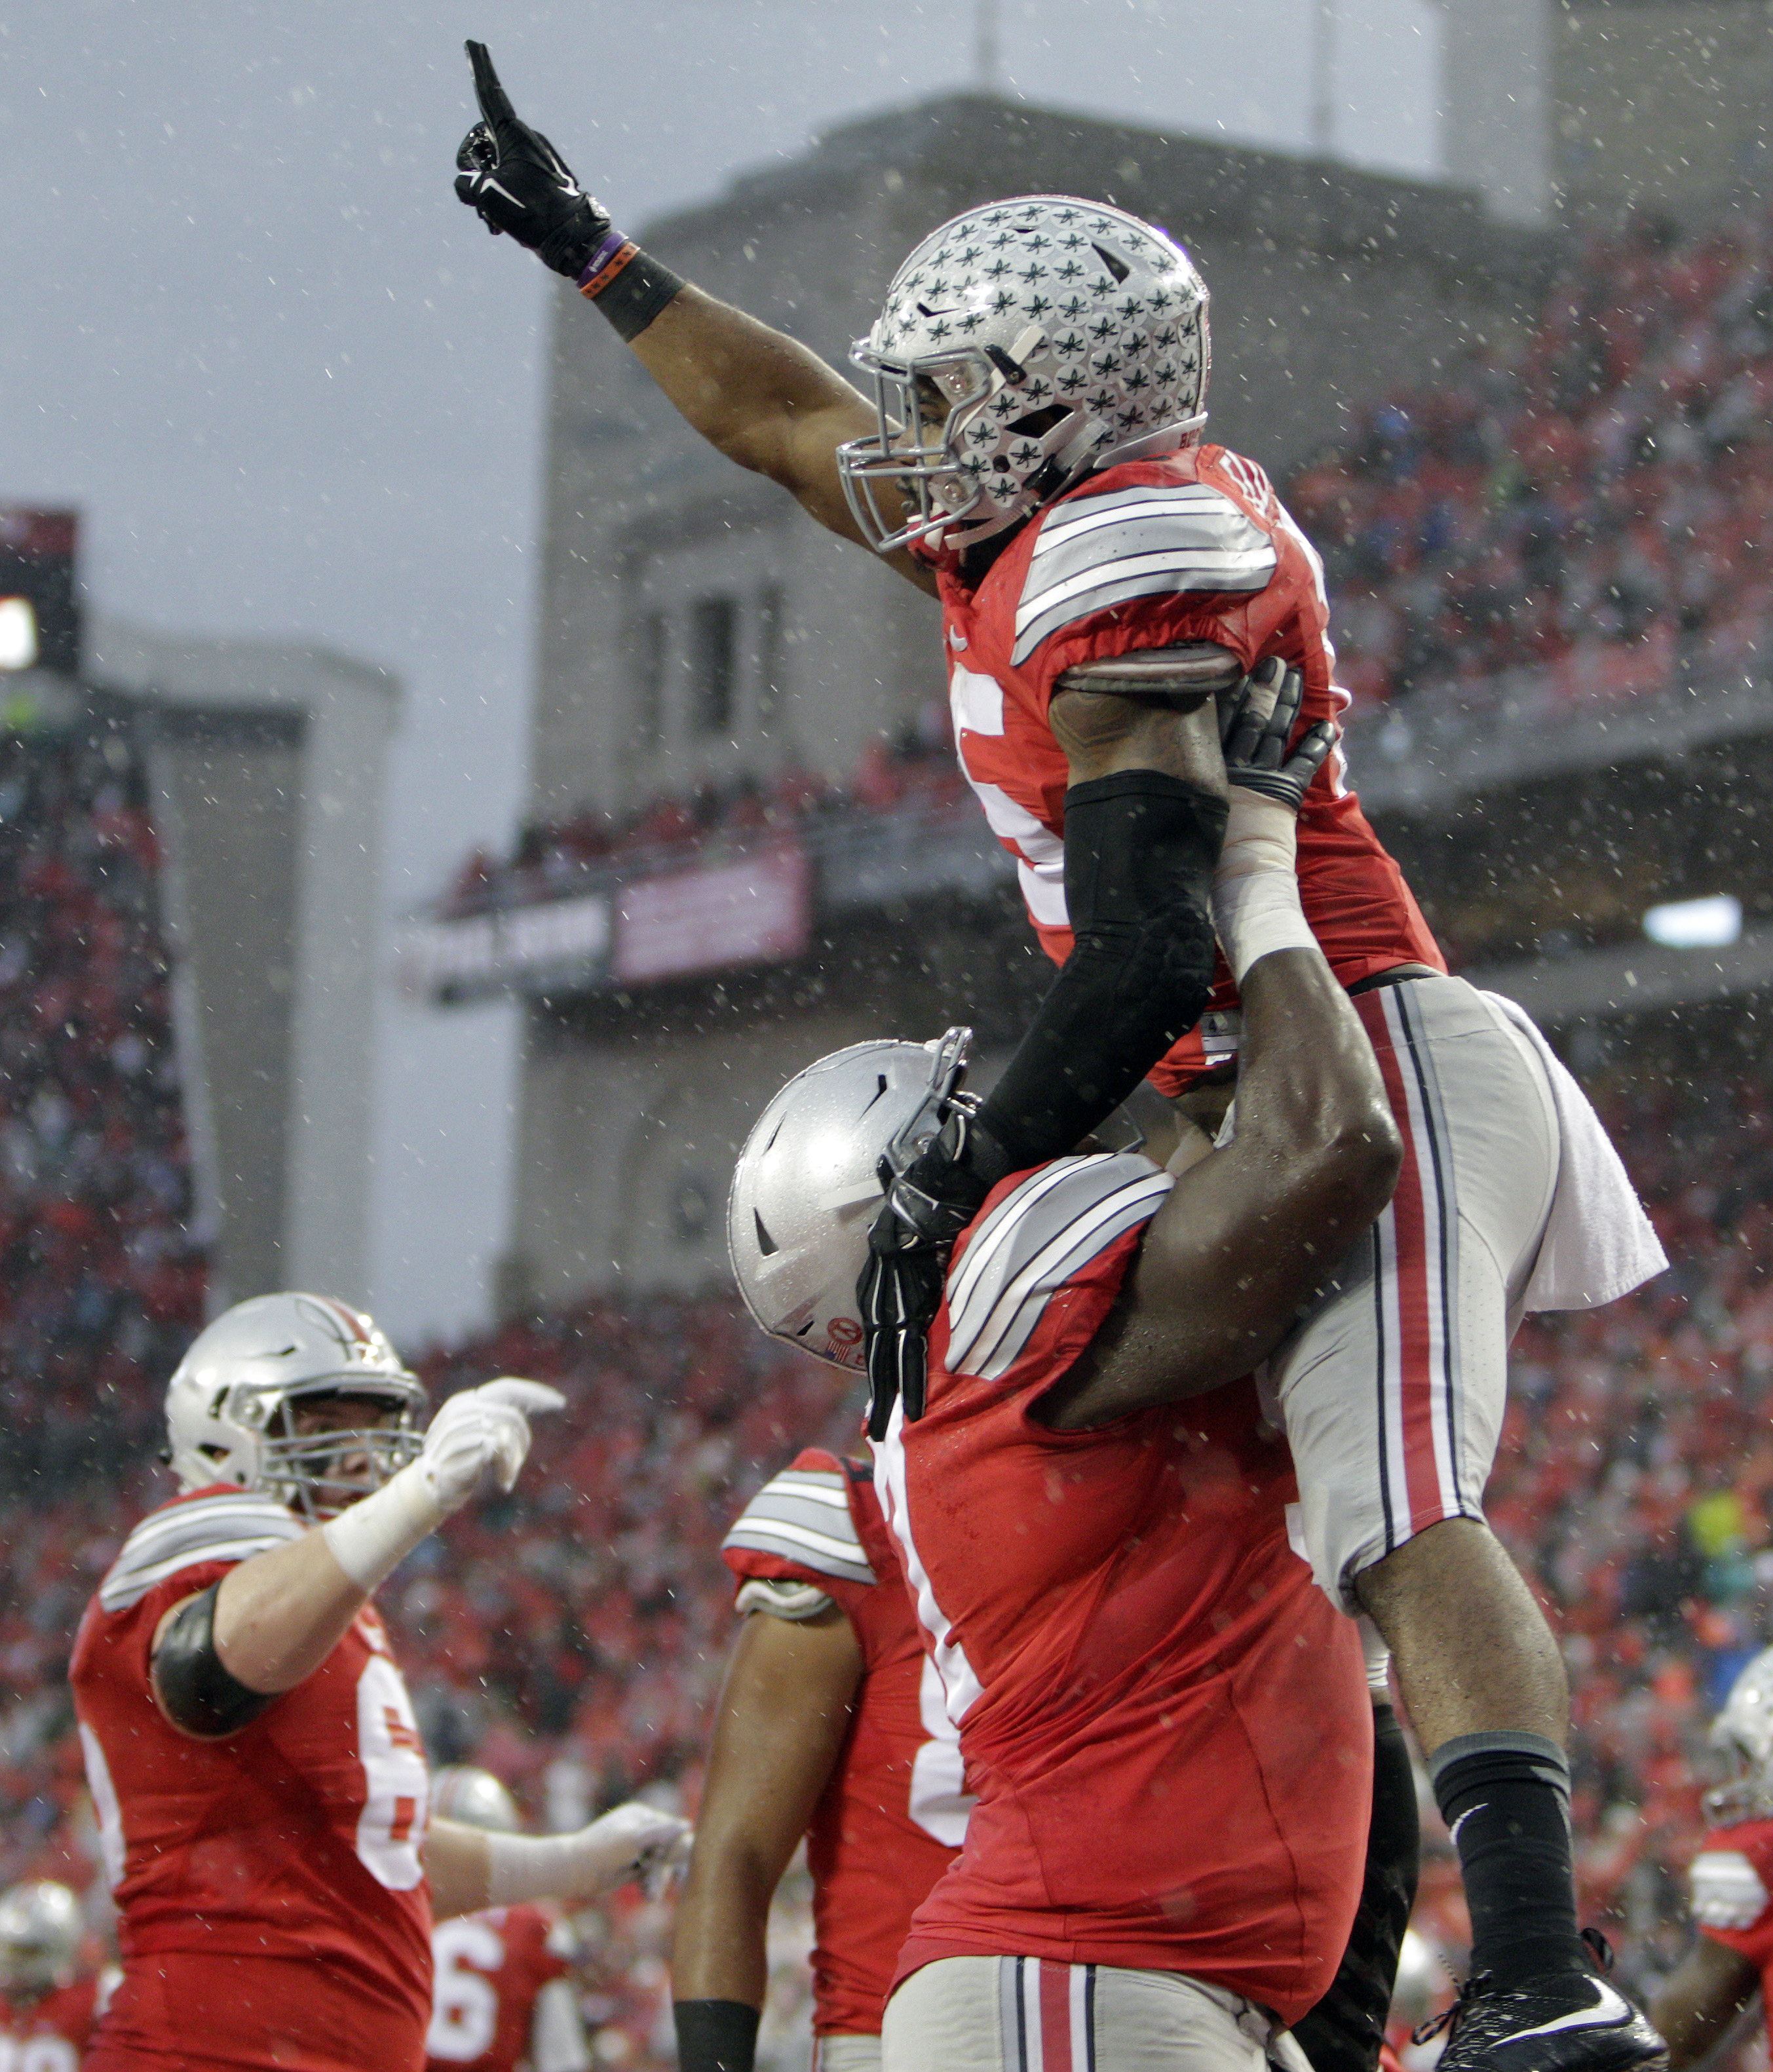 Ohio State running back Ezekiel Elliott , right, celebrates his touchdown against Michigan State with teammate Chase Farris during the second quarter of an NCAA college football game, Saturday, Nov. 21, 2015, in Columbus, Ohio. (AP Photo/Jay LaPrete)